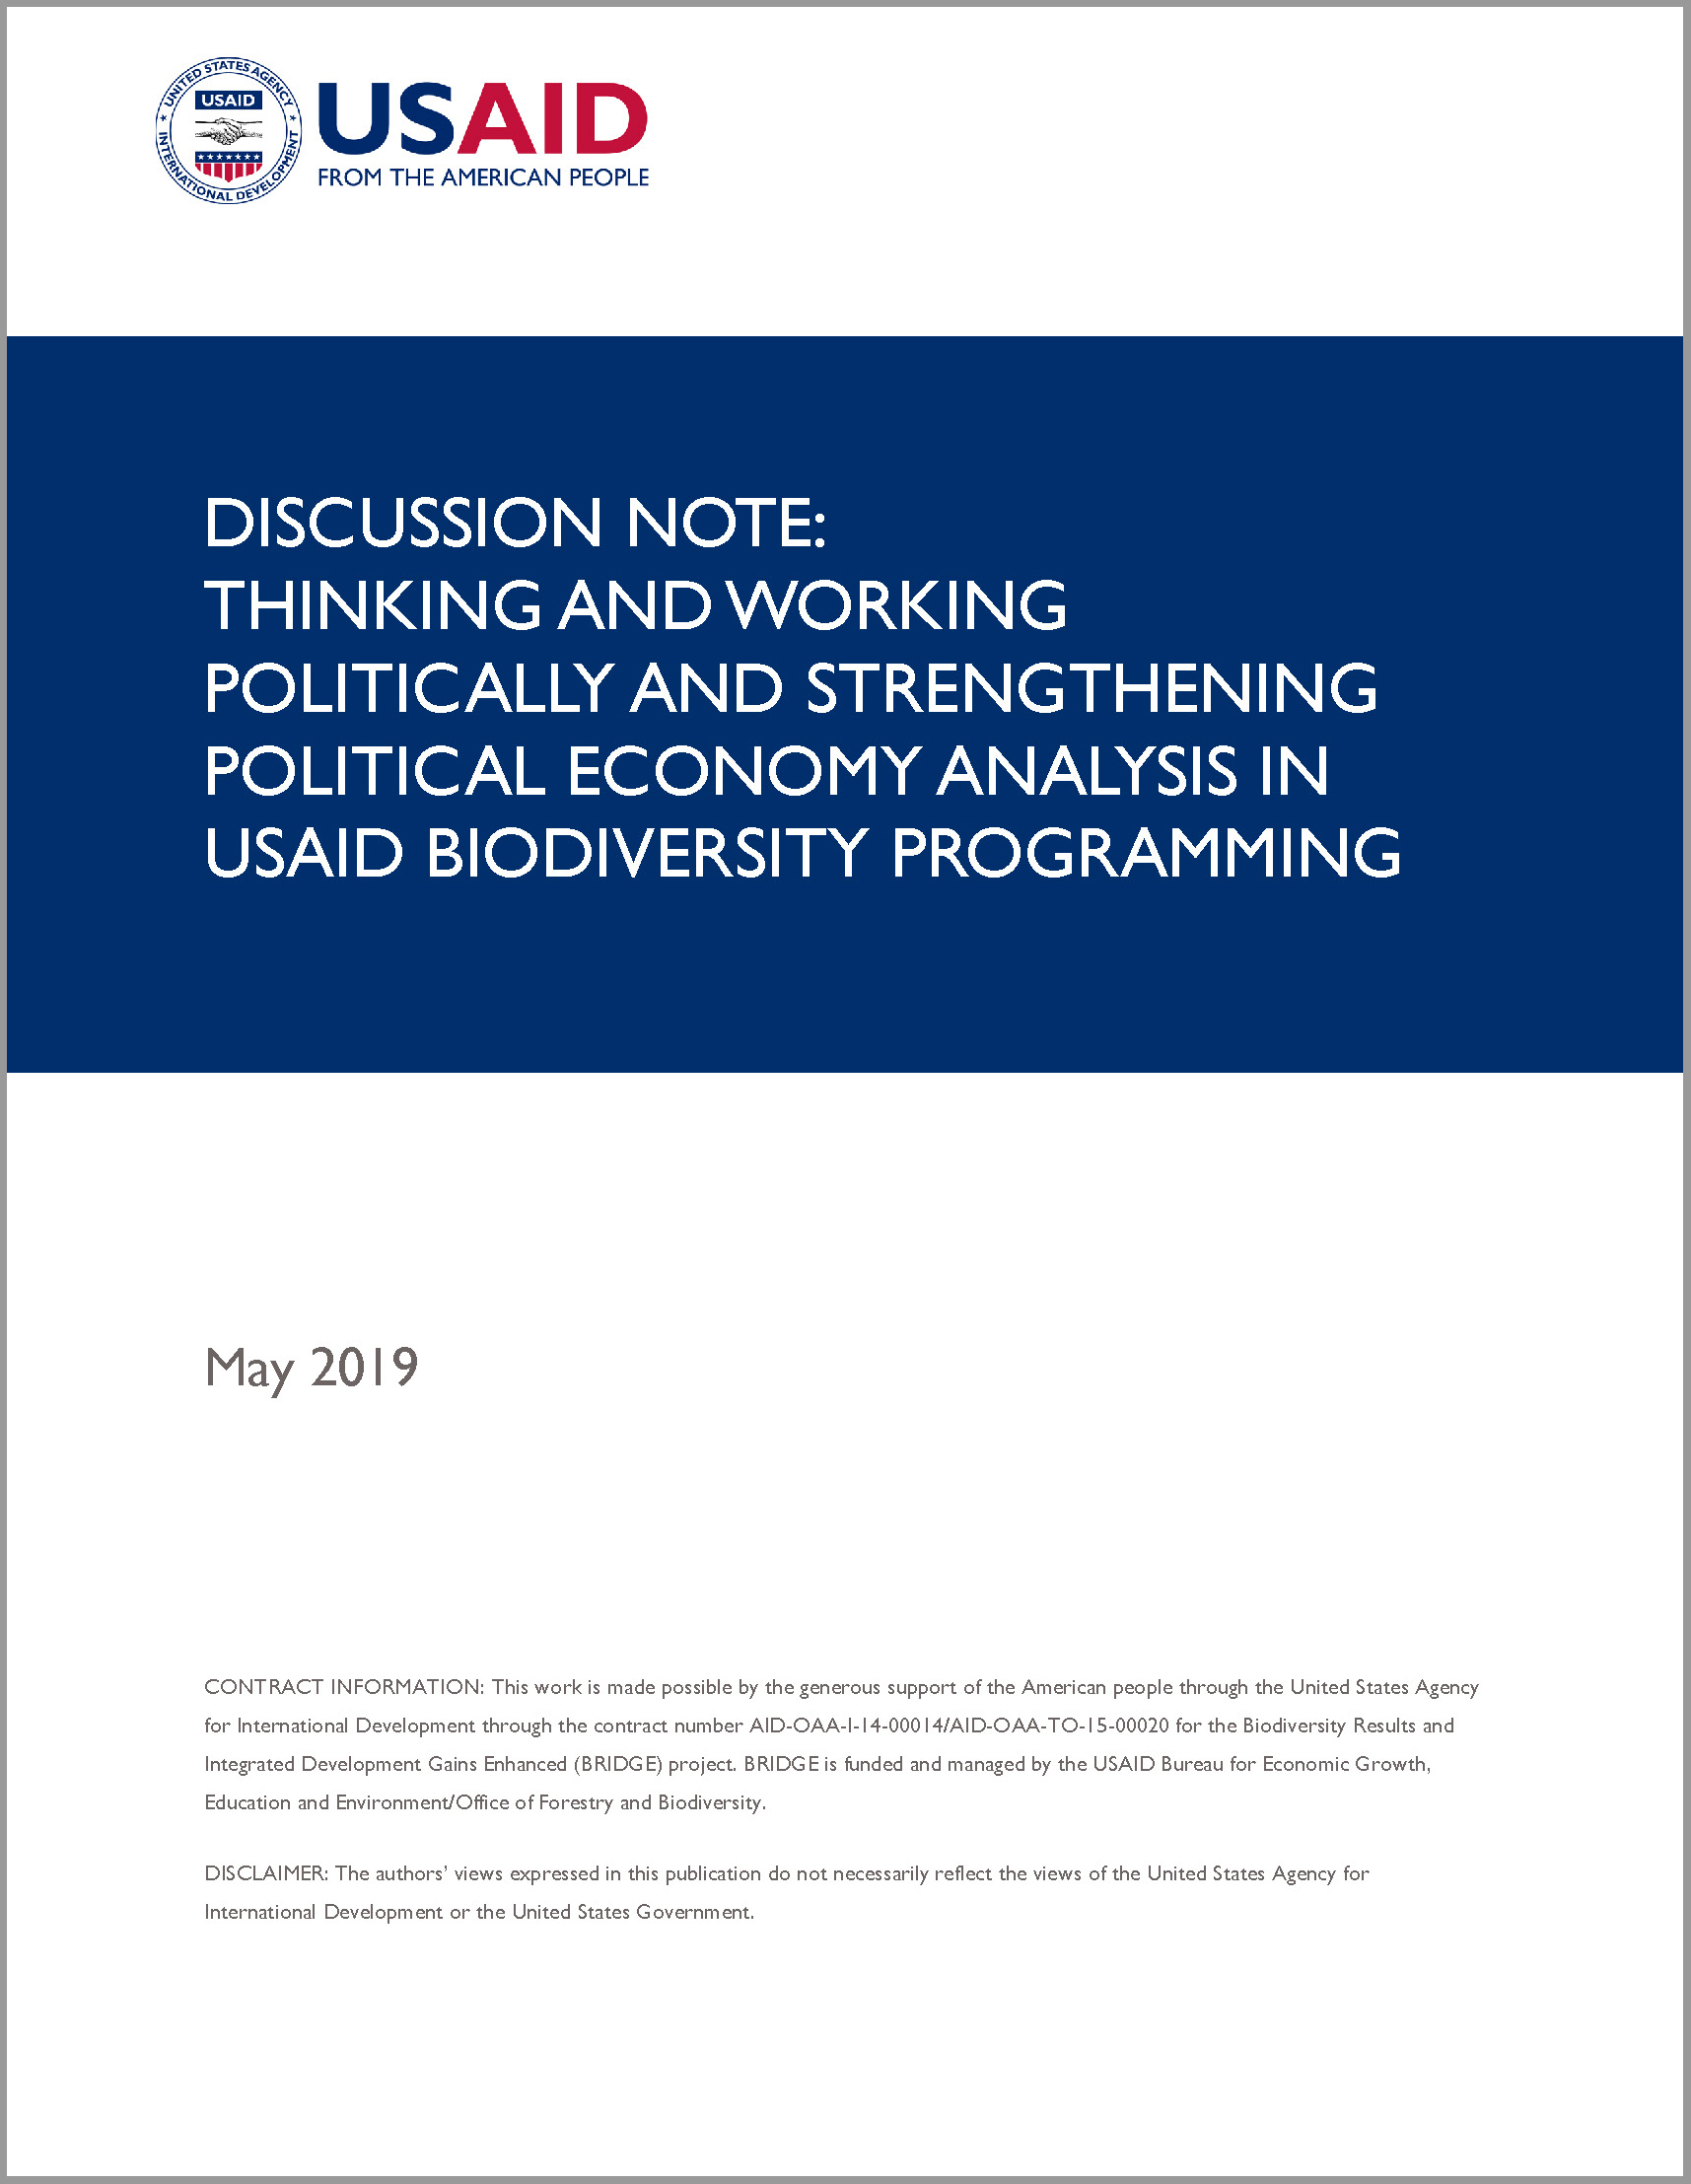 Discussion Note: Thinking and Working Politically and Strengthening Political Economy Analysis in USAID Biodiversity Programming